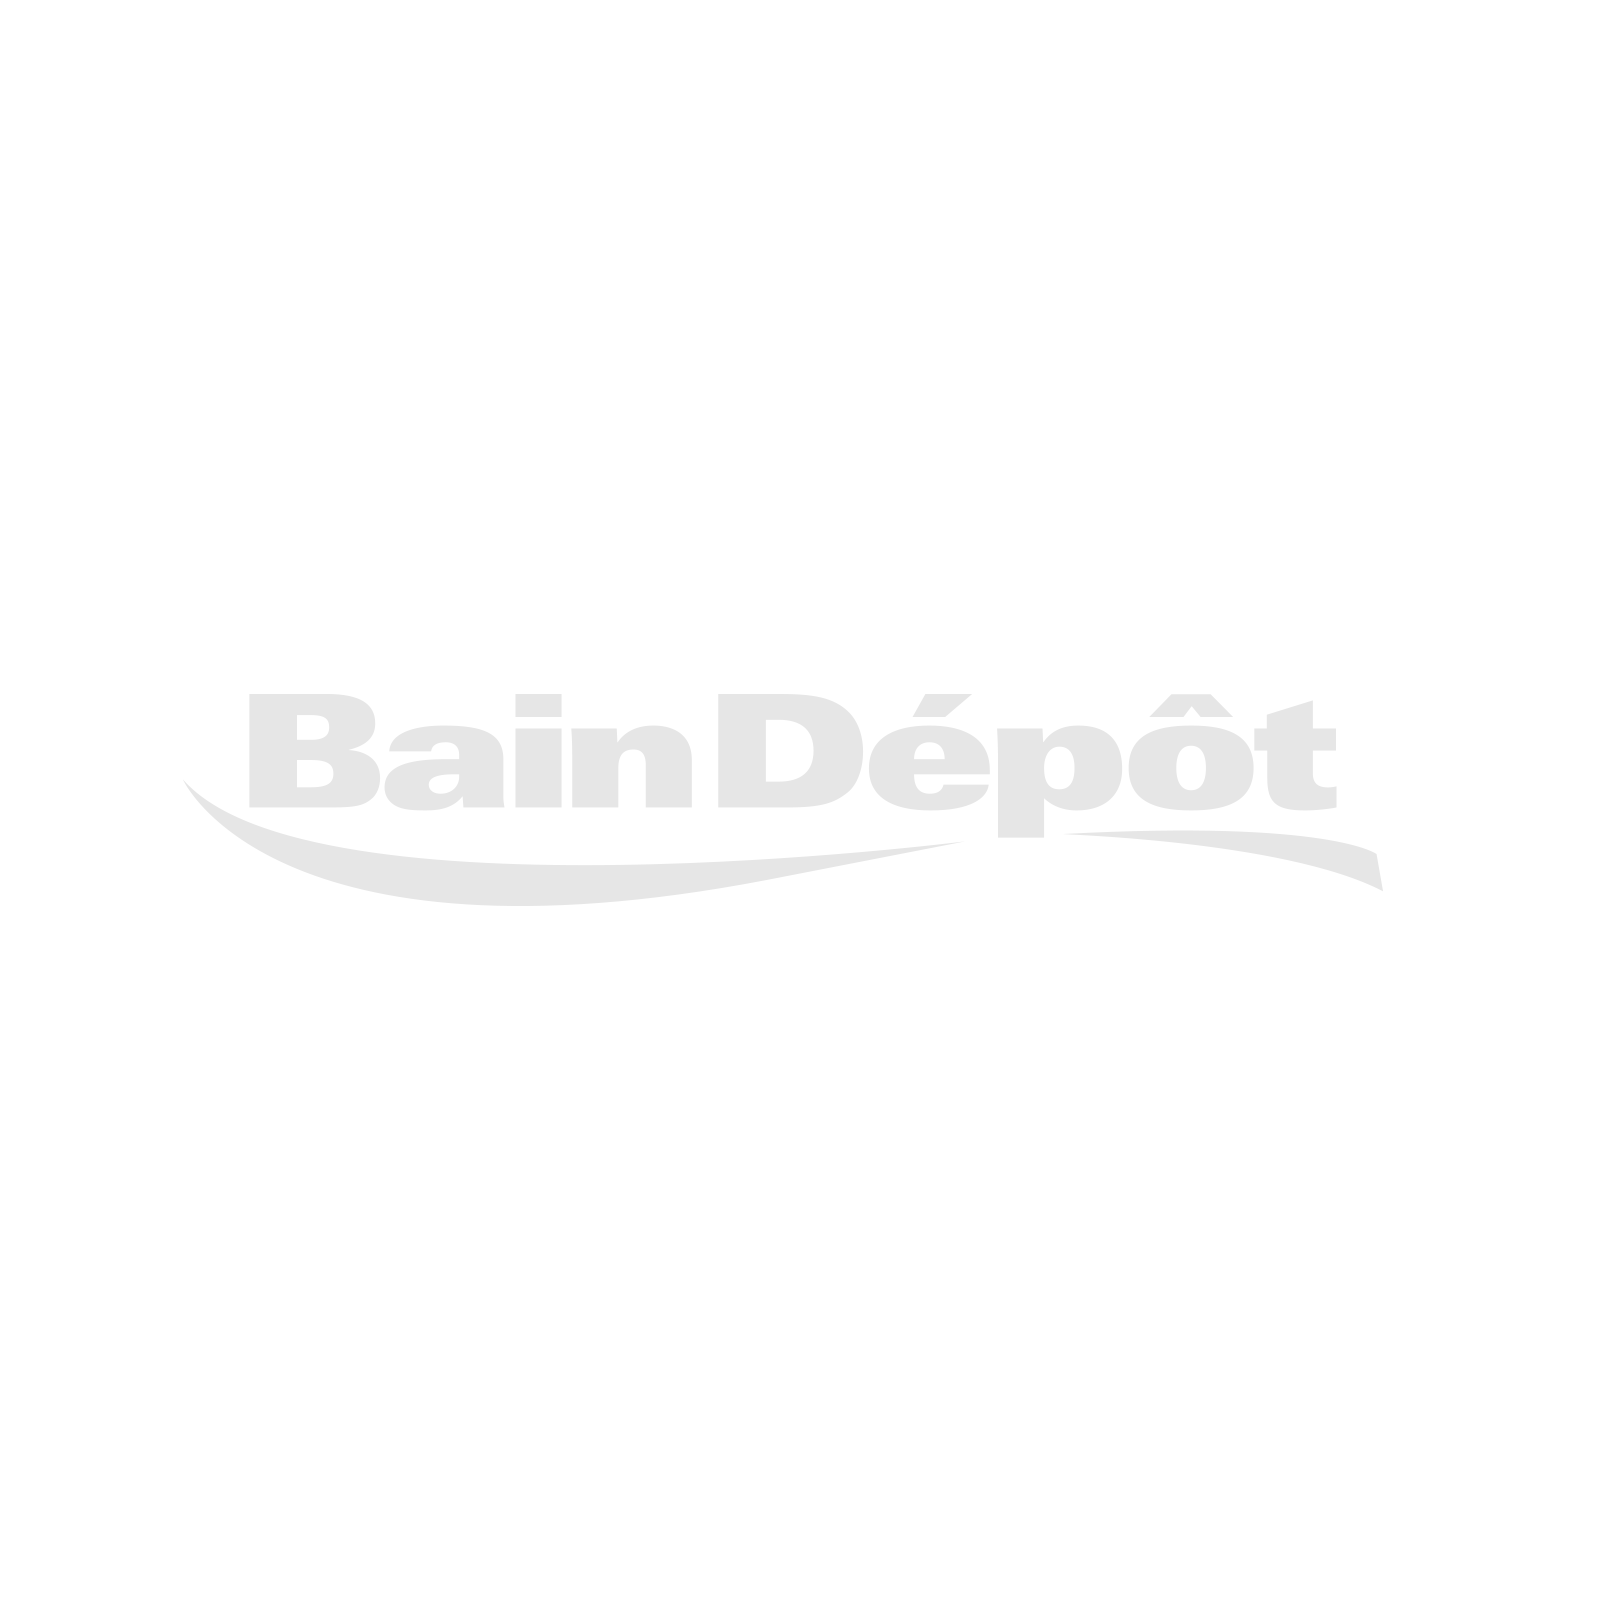 Matte black rounded thermostatic shower column with rain shower, hand shower and bath spout